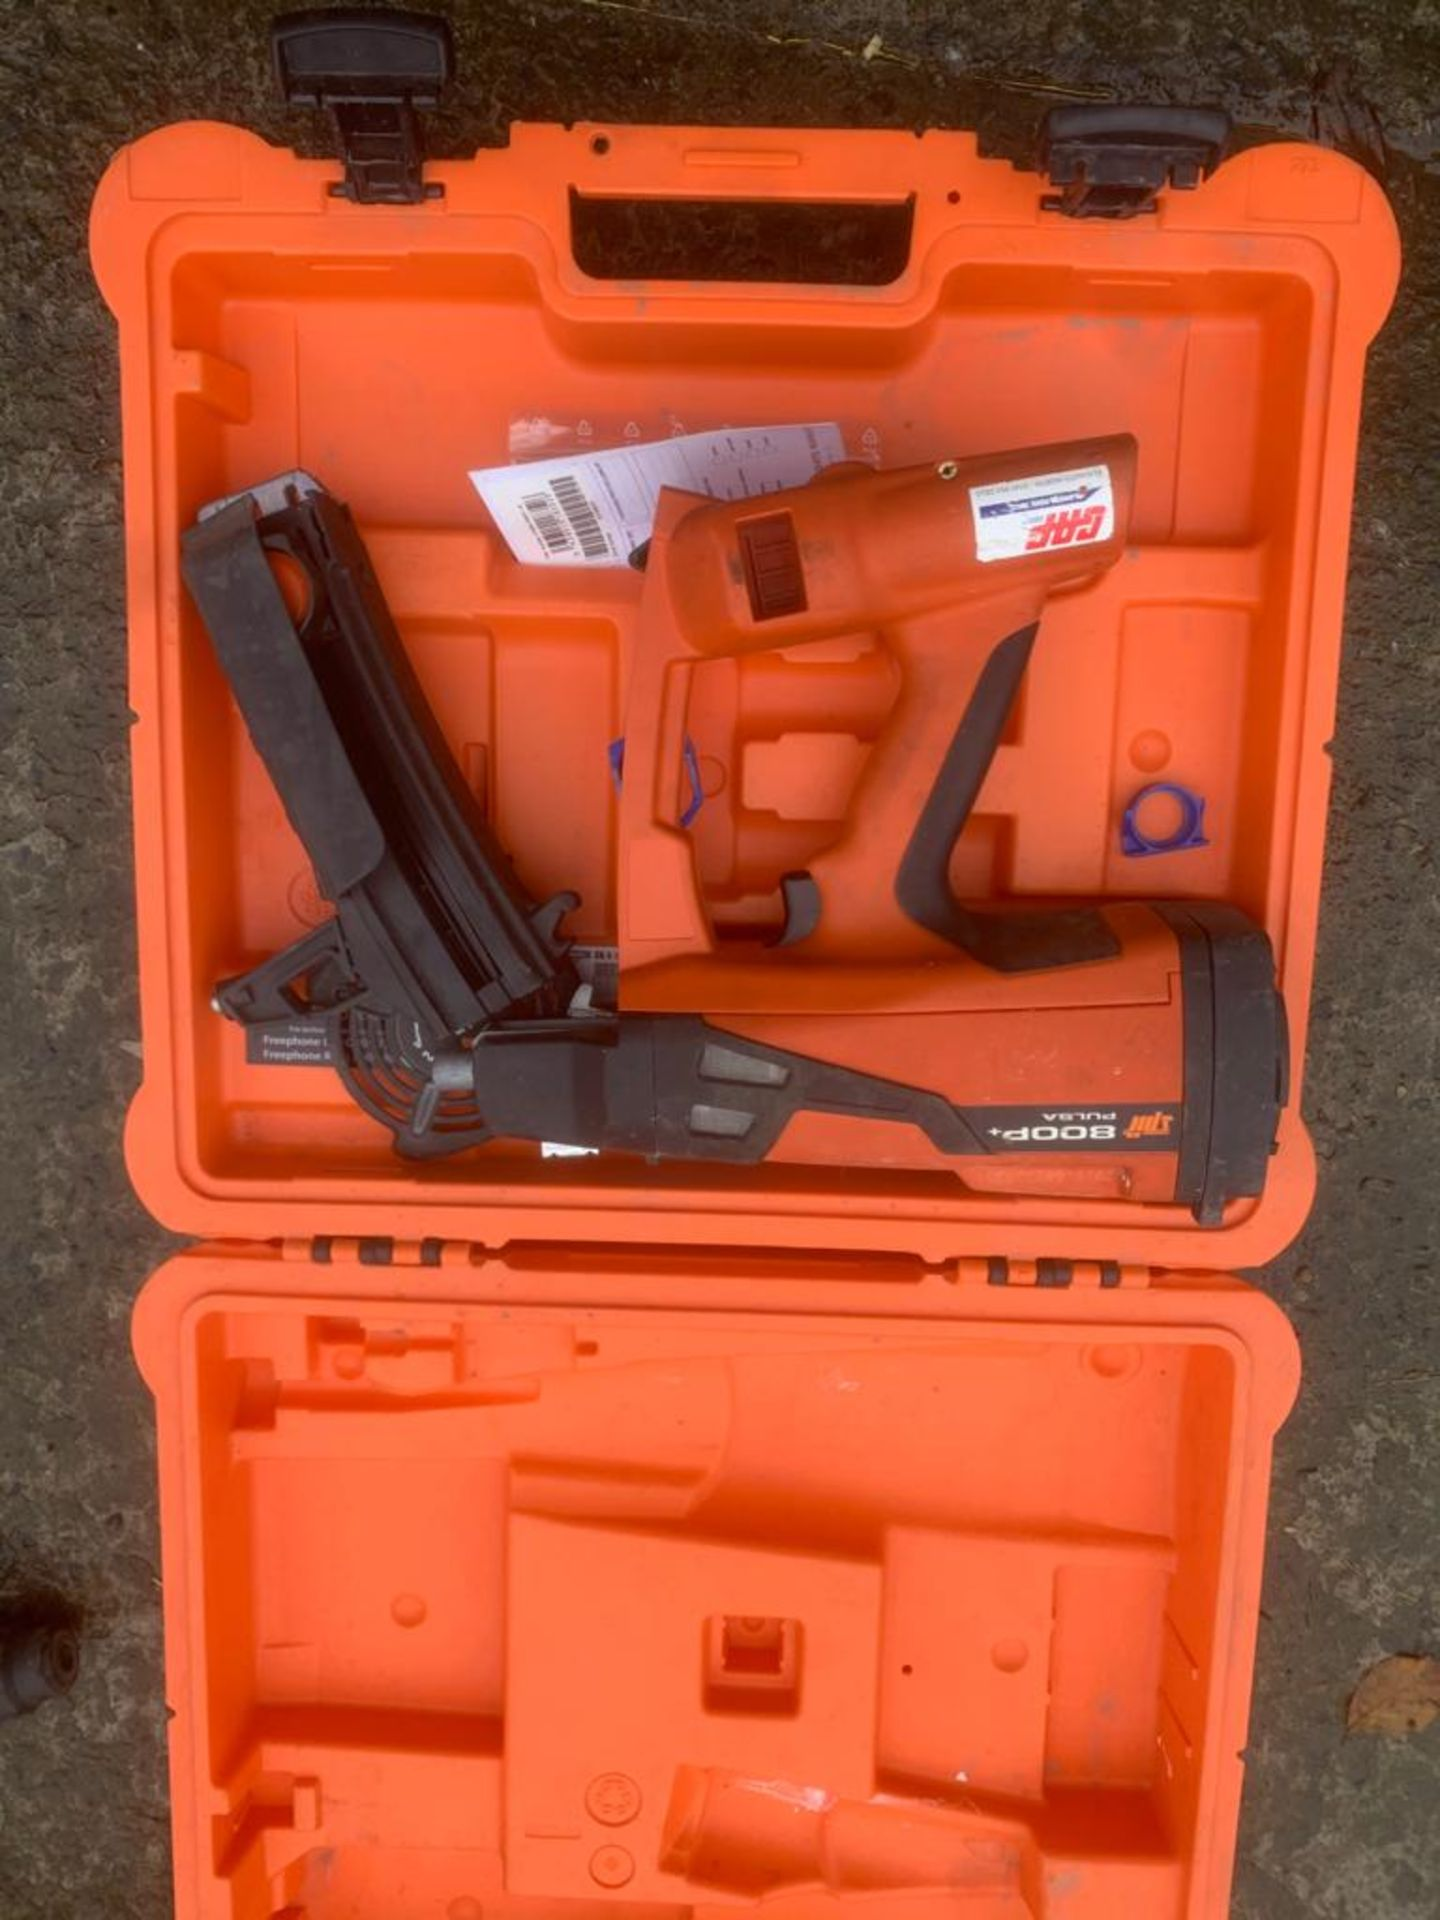 SPITT PULSA 800 NAIL GUN, DELIVERY ANYWHERE UK £10 *PLUS VAT* - Image 2 of 2